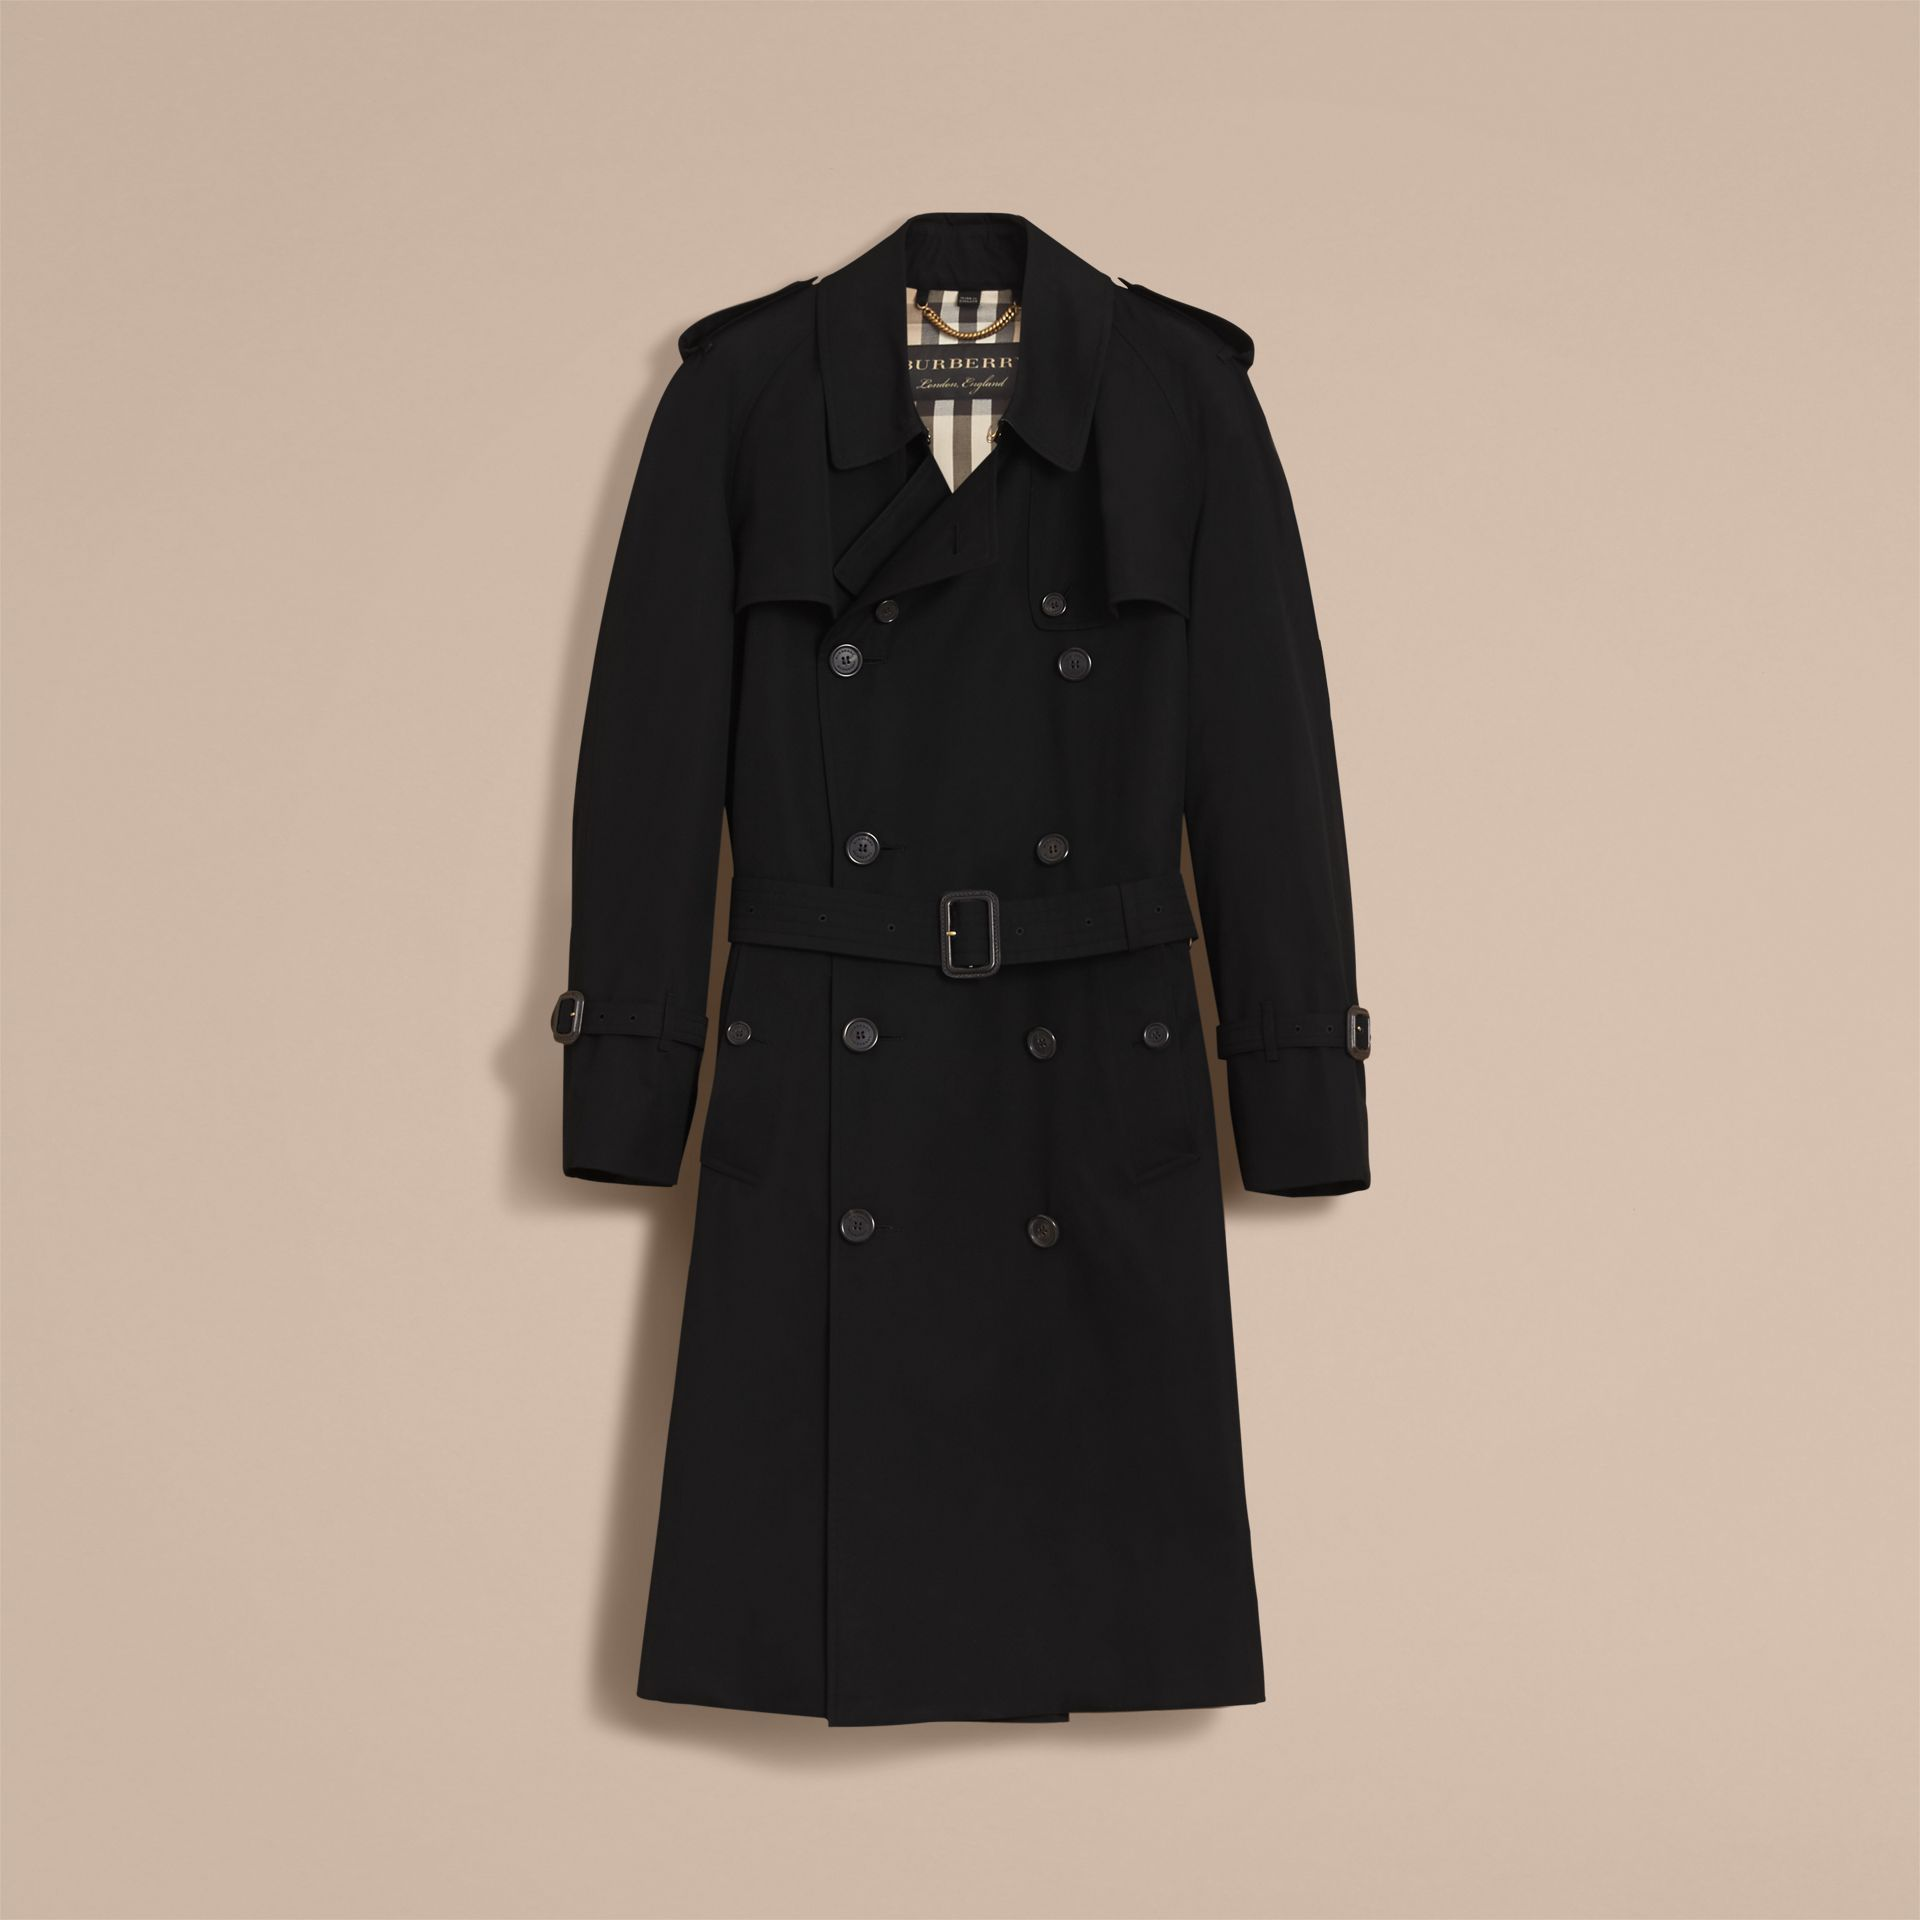 Cotton Gabardine Sculptural Trench Coat - Men | Burberry - gallery image 4